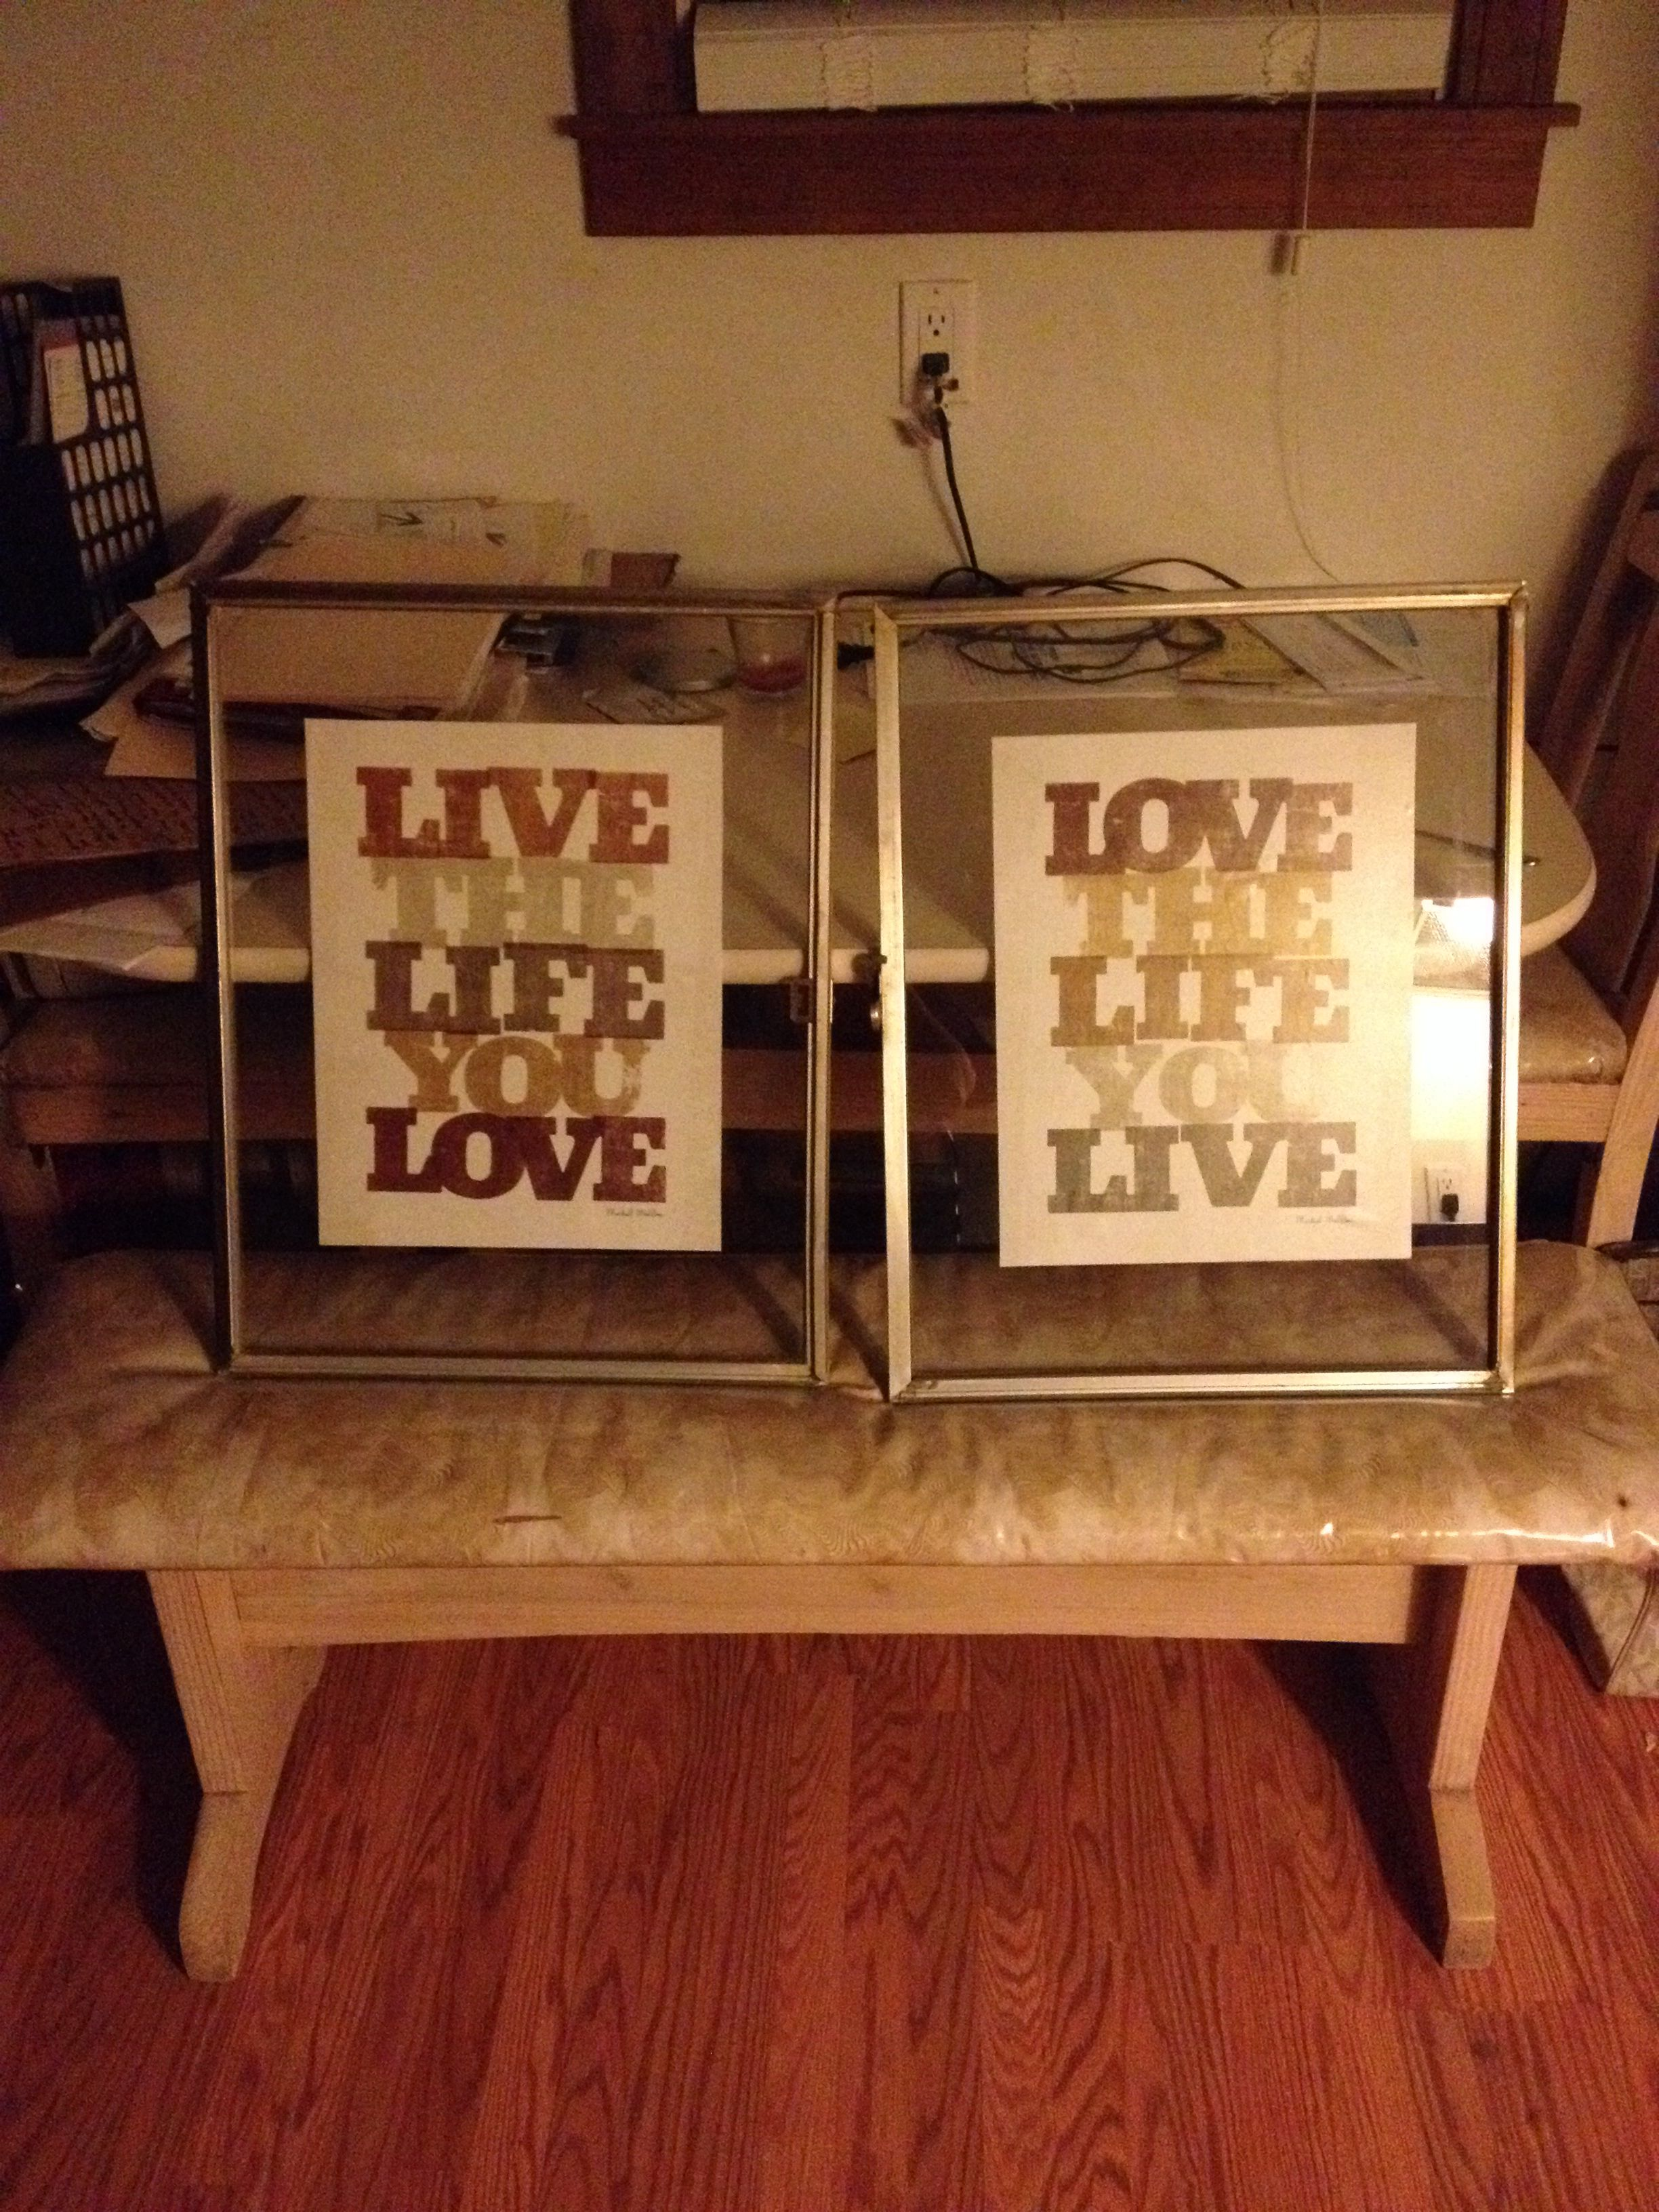 Diy old window decor  old windows and decalsdiy wall art  do it yourself  pinterest